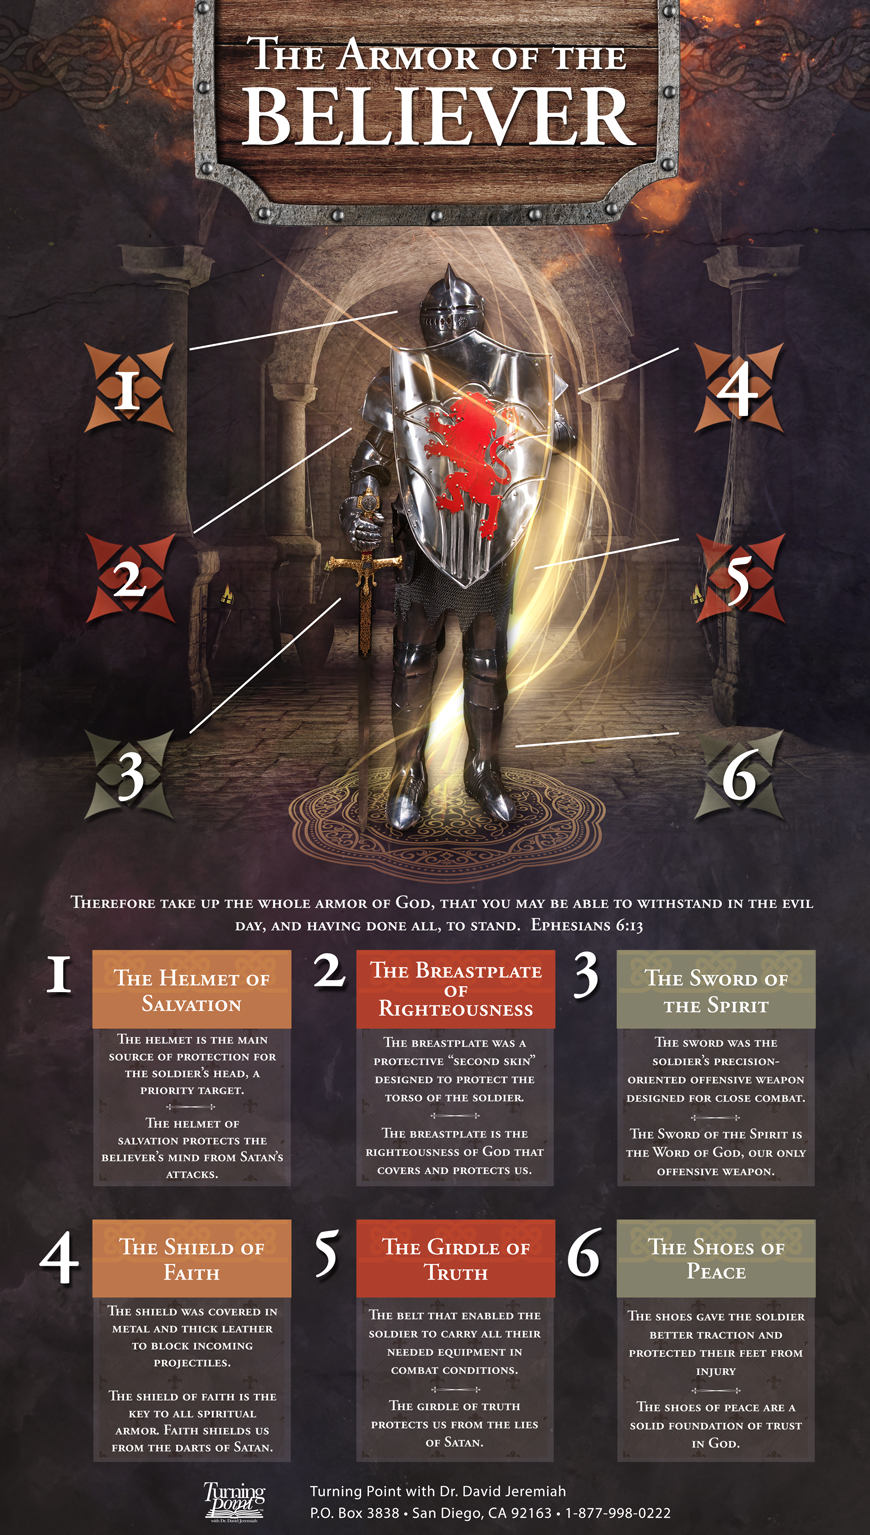 The Armor of the Believer